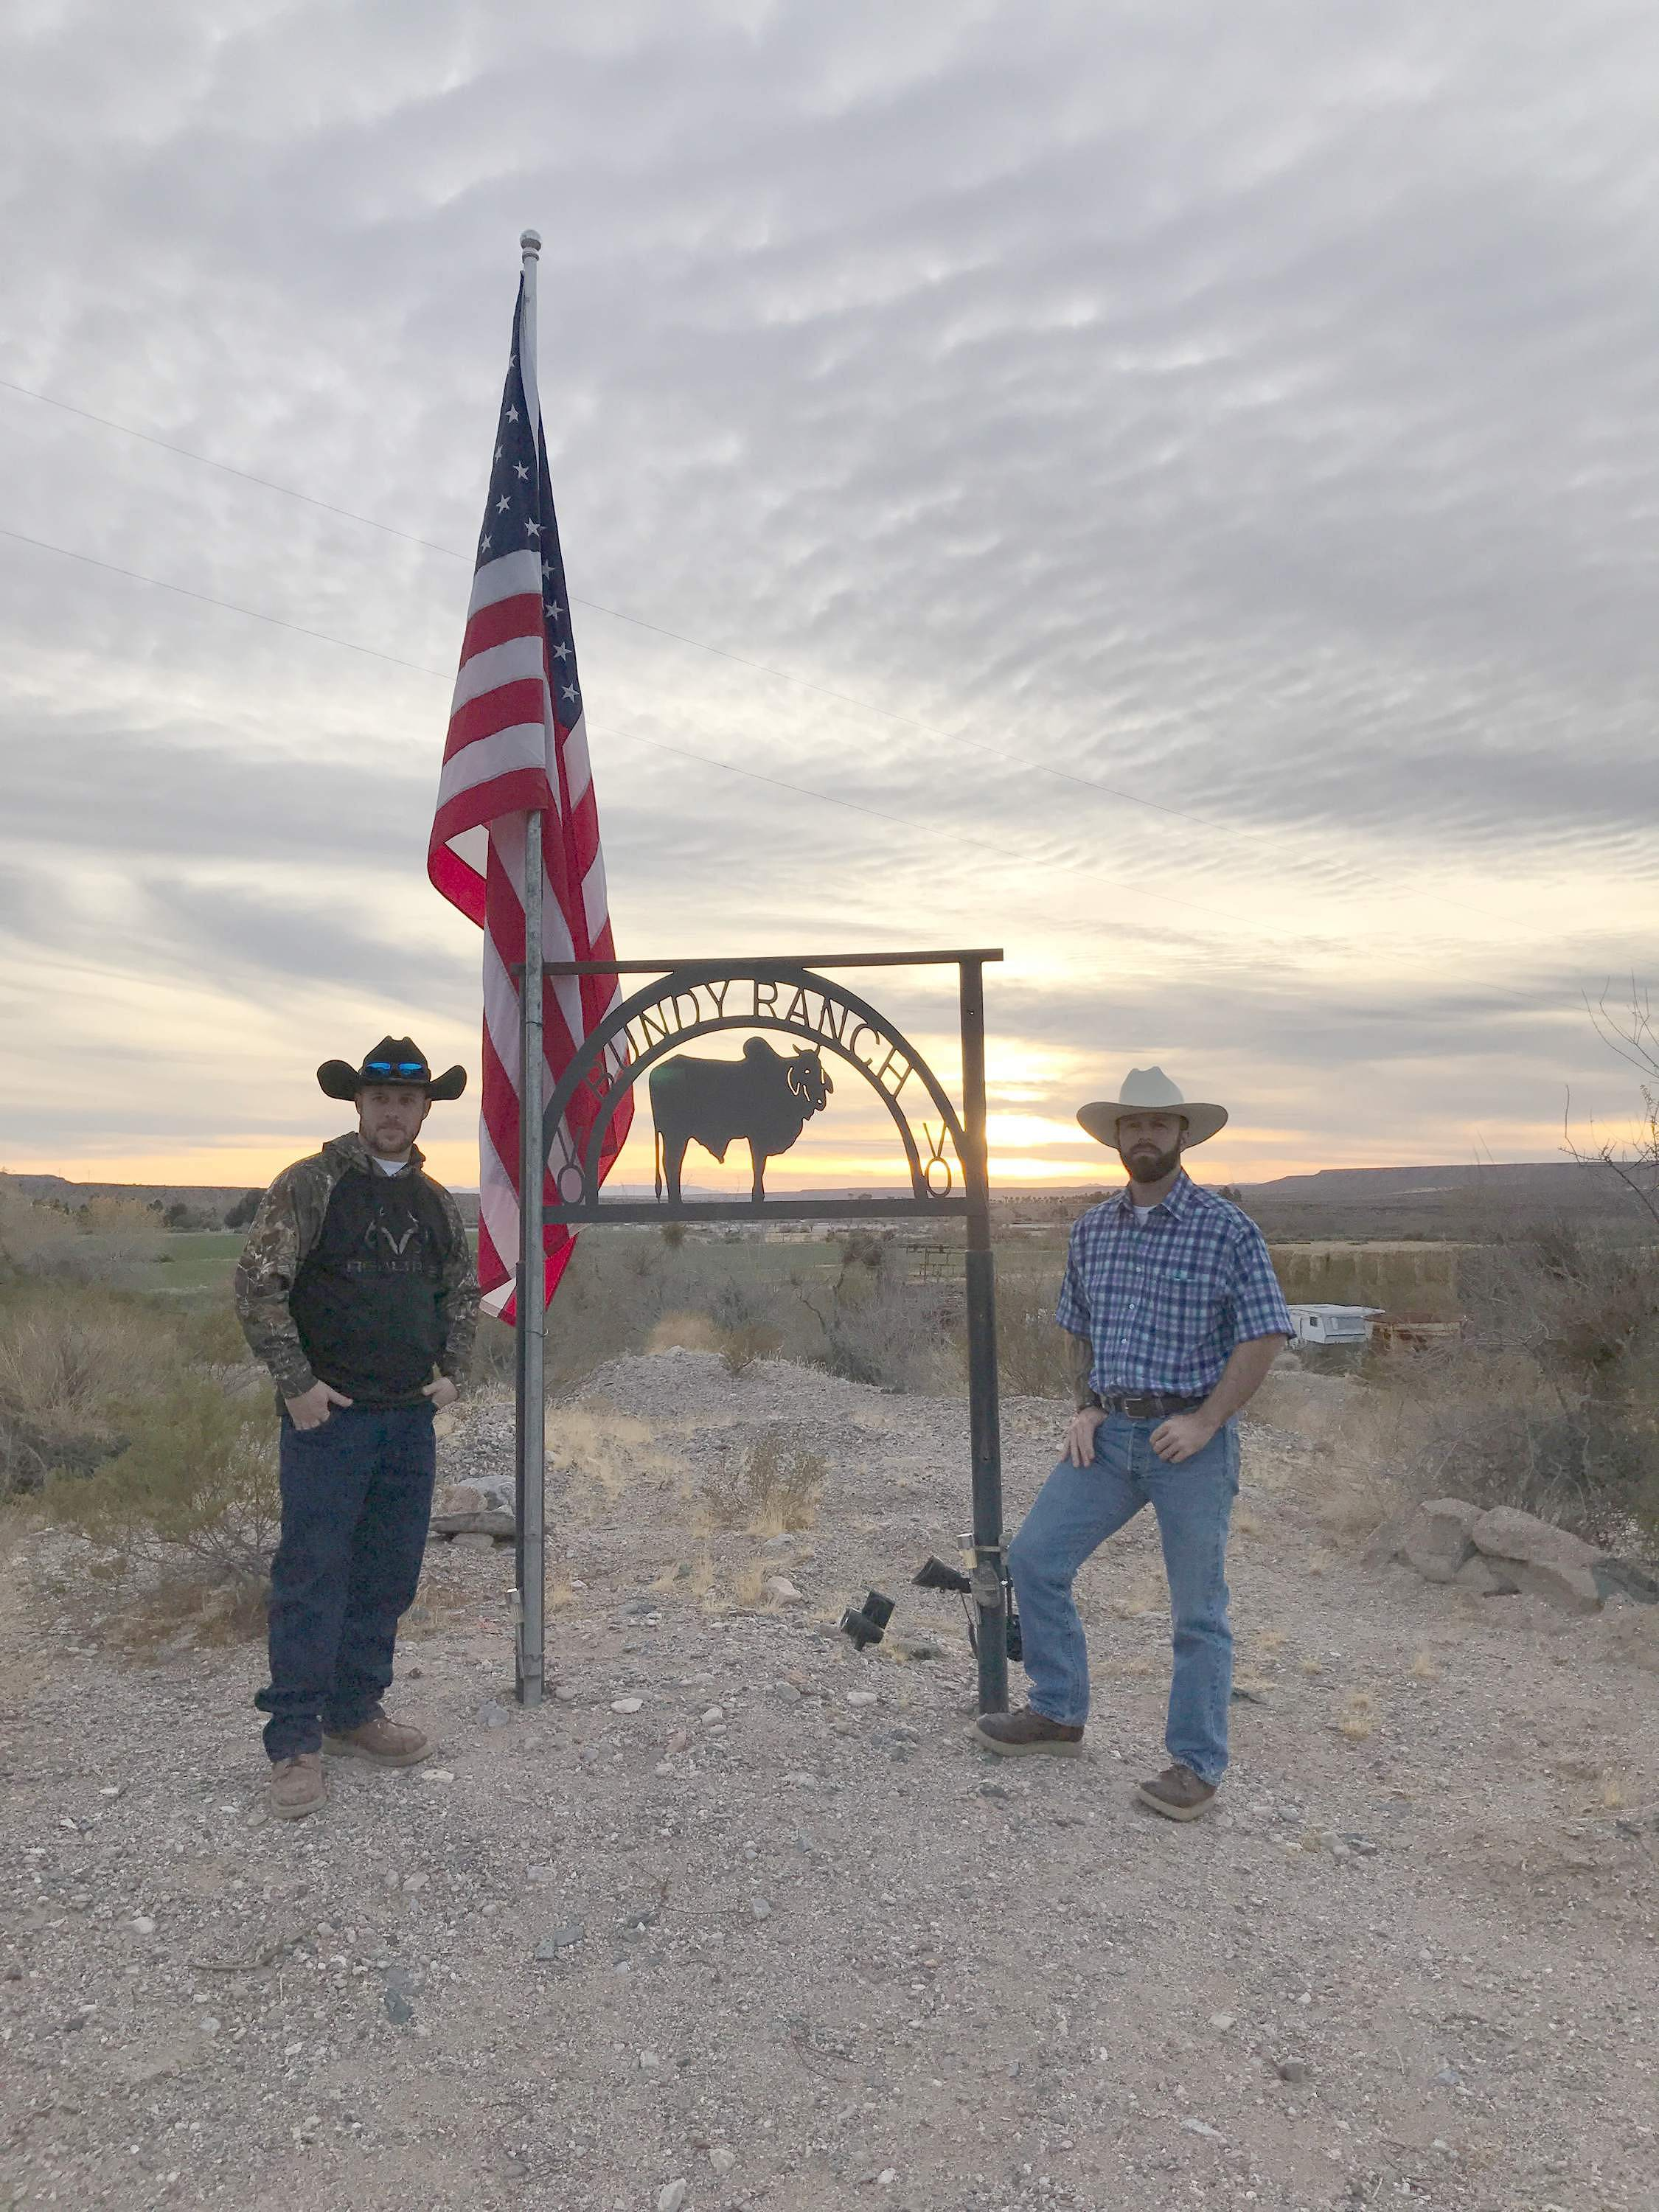 https://i2.wp.com/outpost-of-freedom.com/blog/wp-content/uploads/2018/01/Jon-Ryan-BundyRanch.jpg